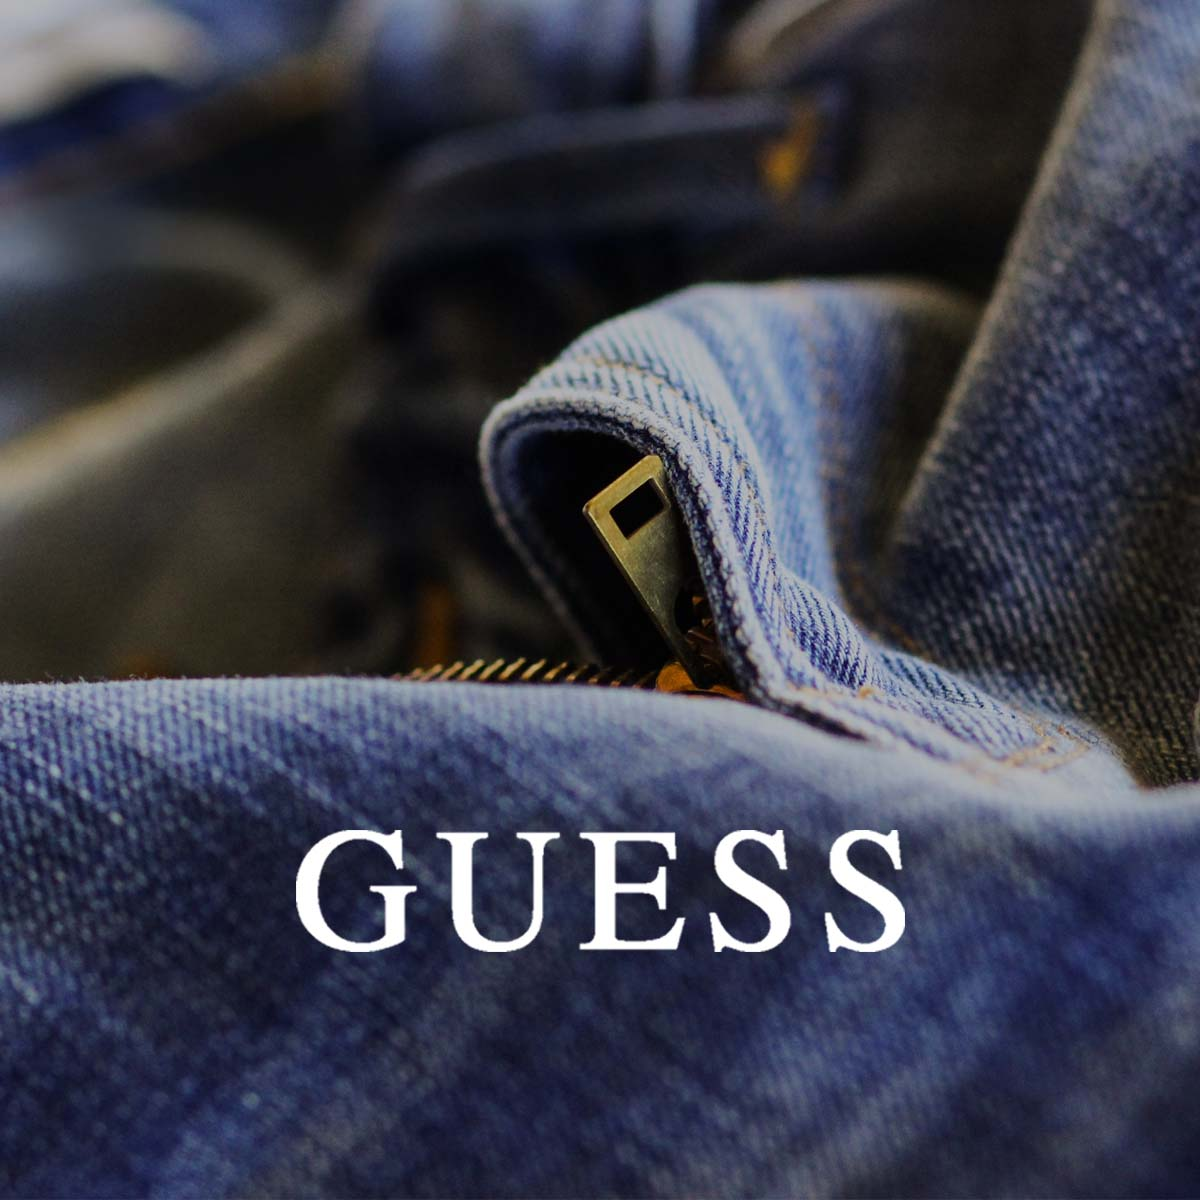 Guess square 4 (website).jpg